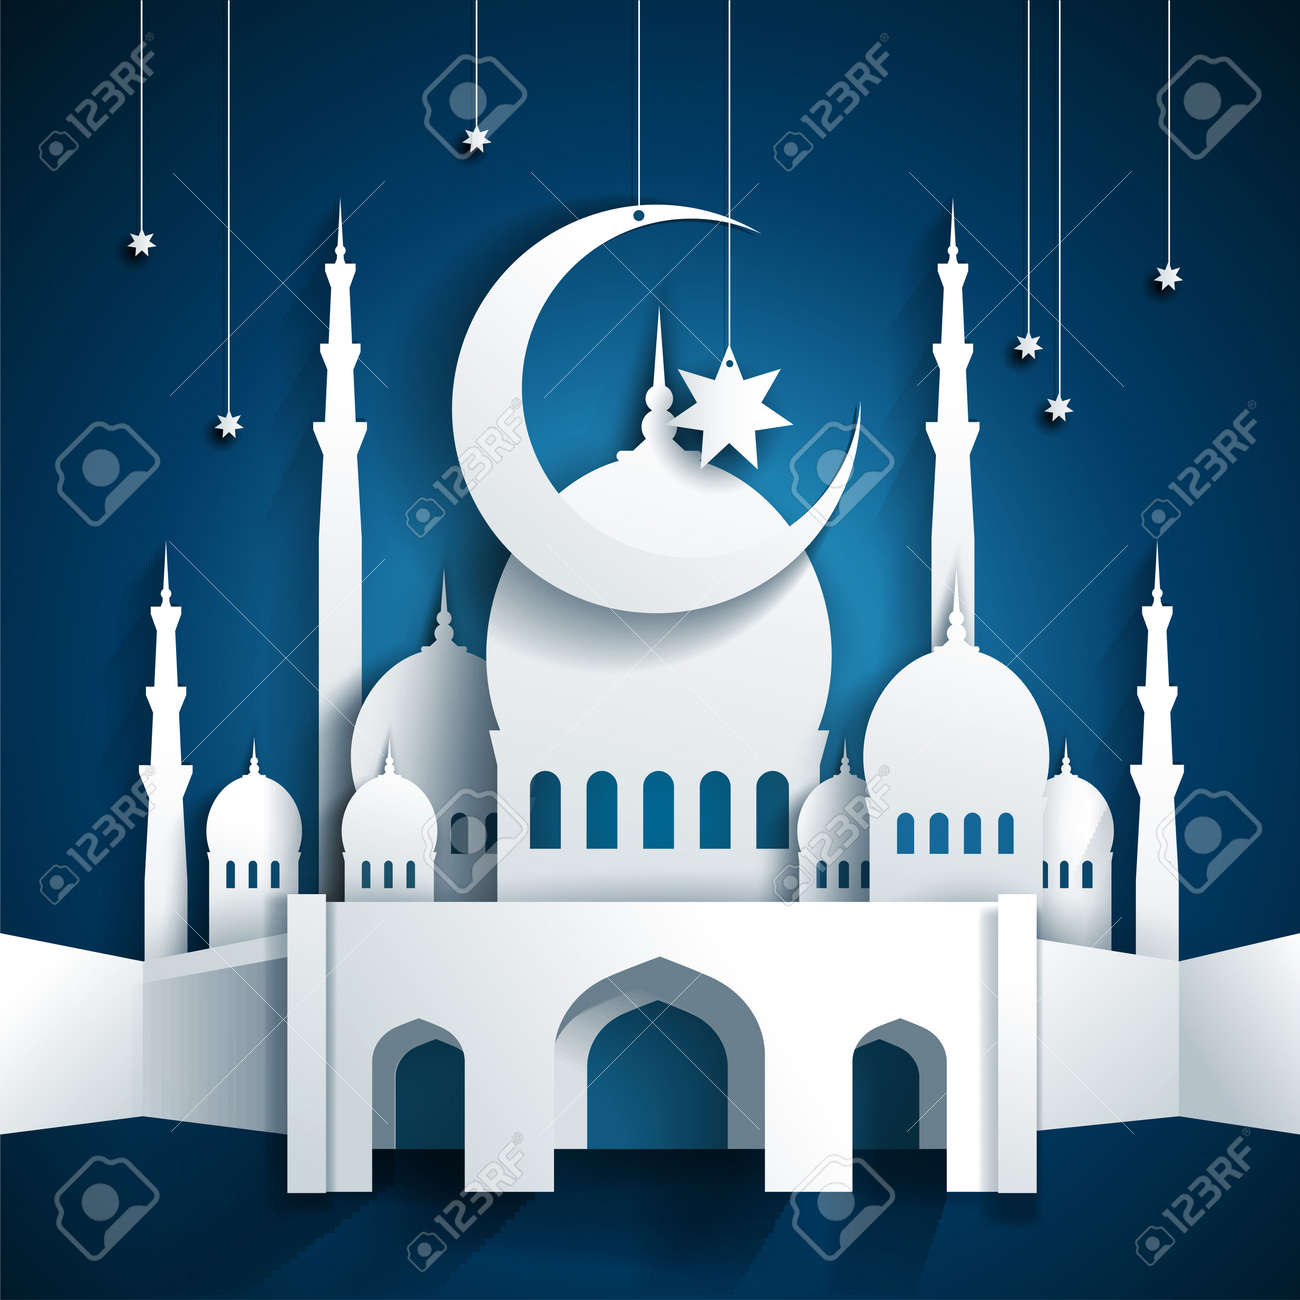 Mosque background for ramadan kareem stock photography image - 3d Mosque And Crescent Moon With Stars Ramadan Kareem Or Ramazan Kareem Background Paper